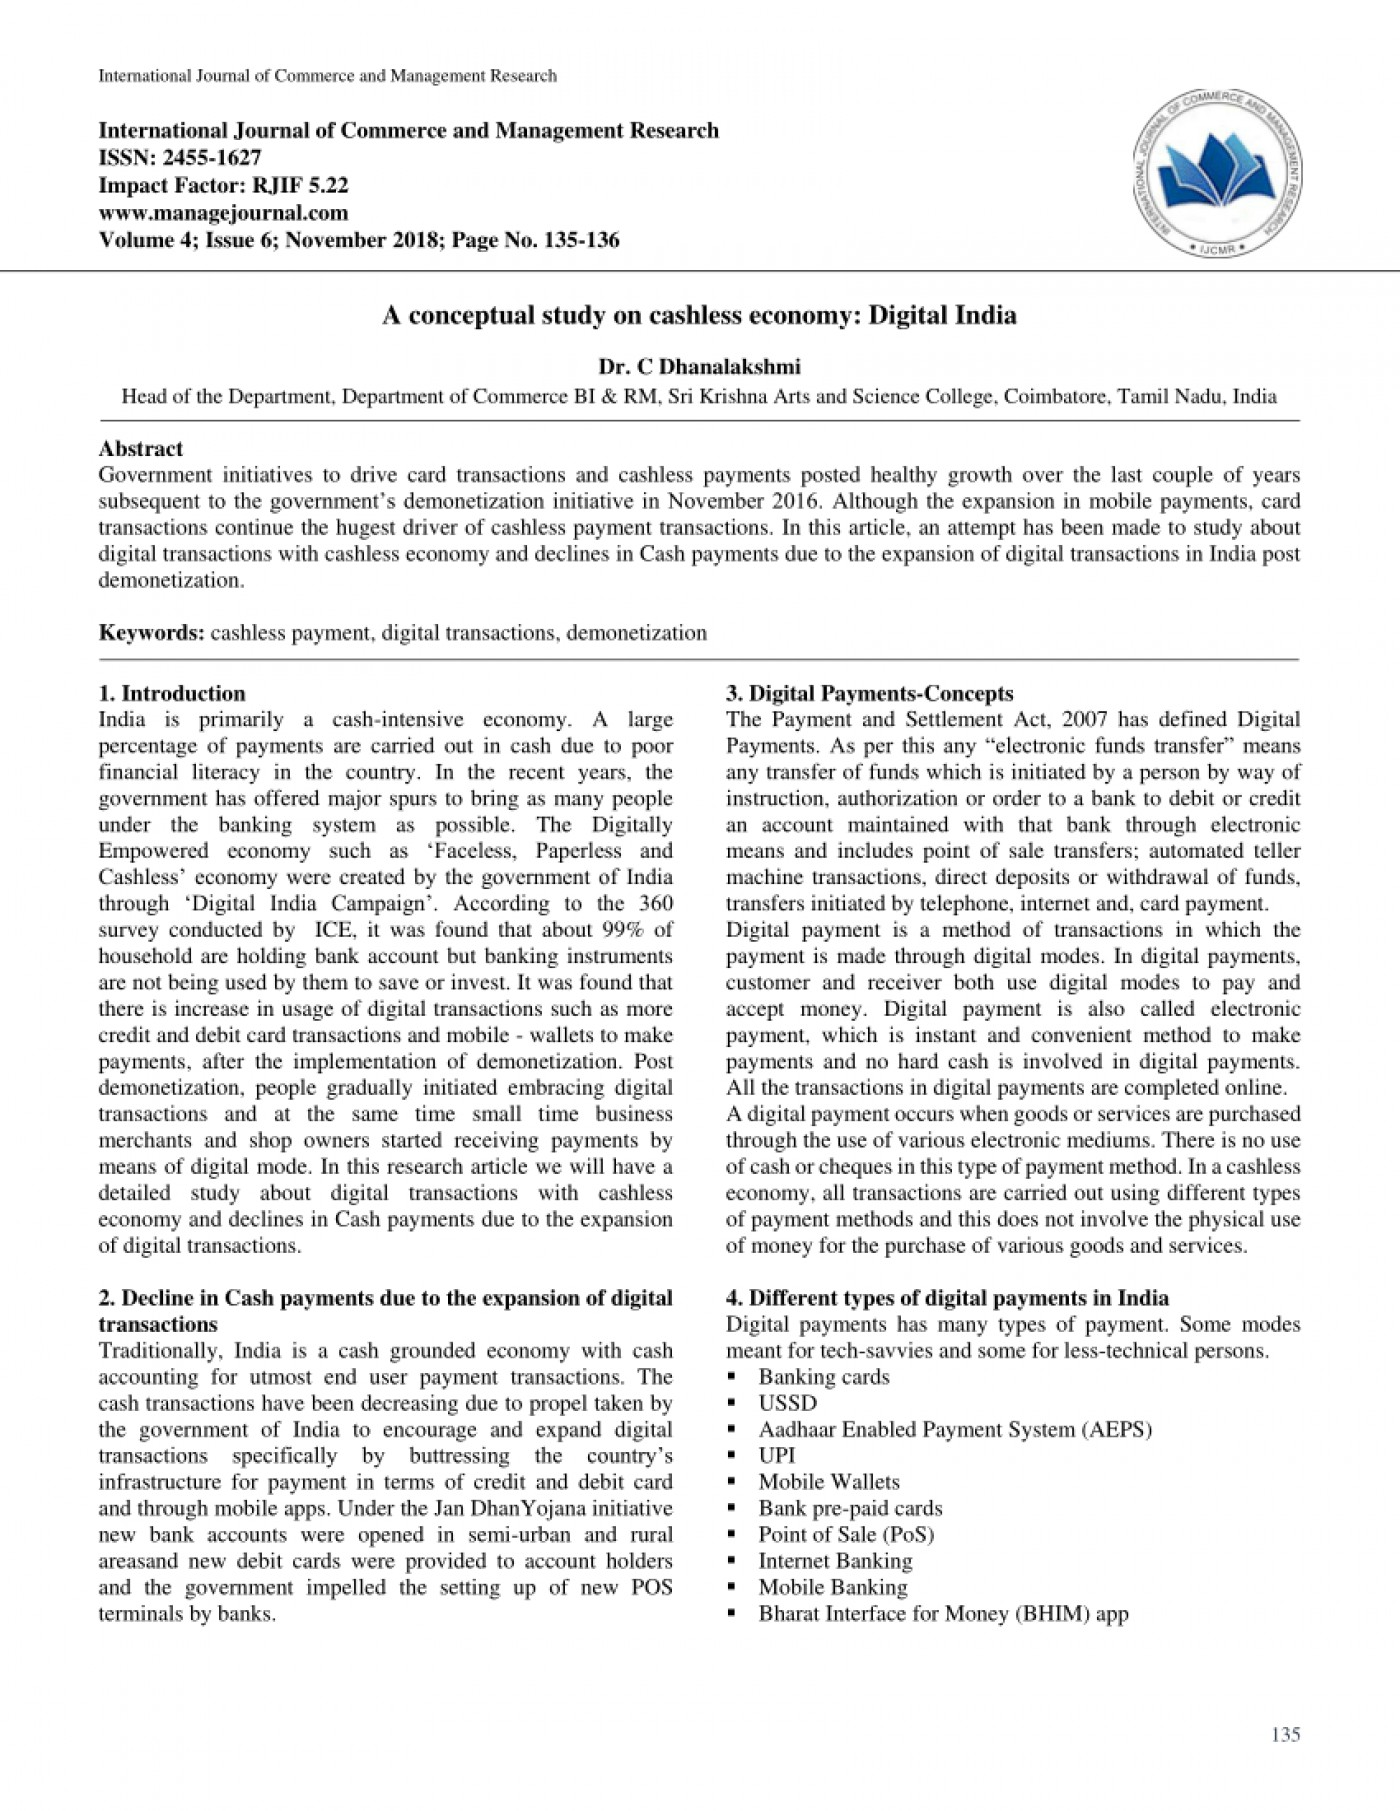 014 Cash To Cashless Economy Research Paper Rare 1400